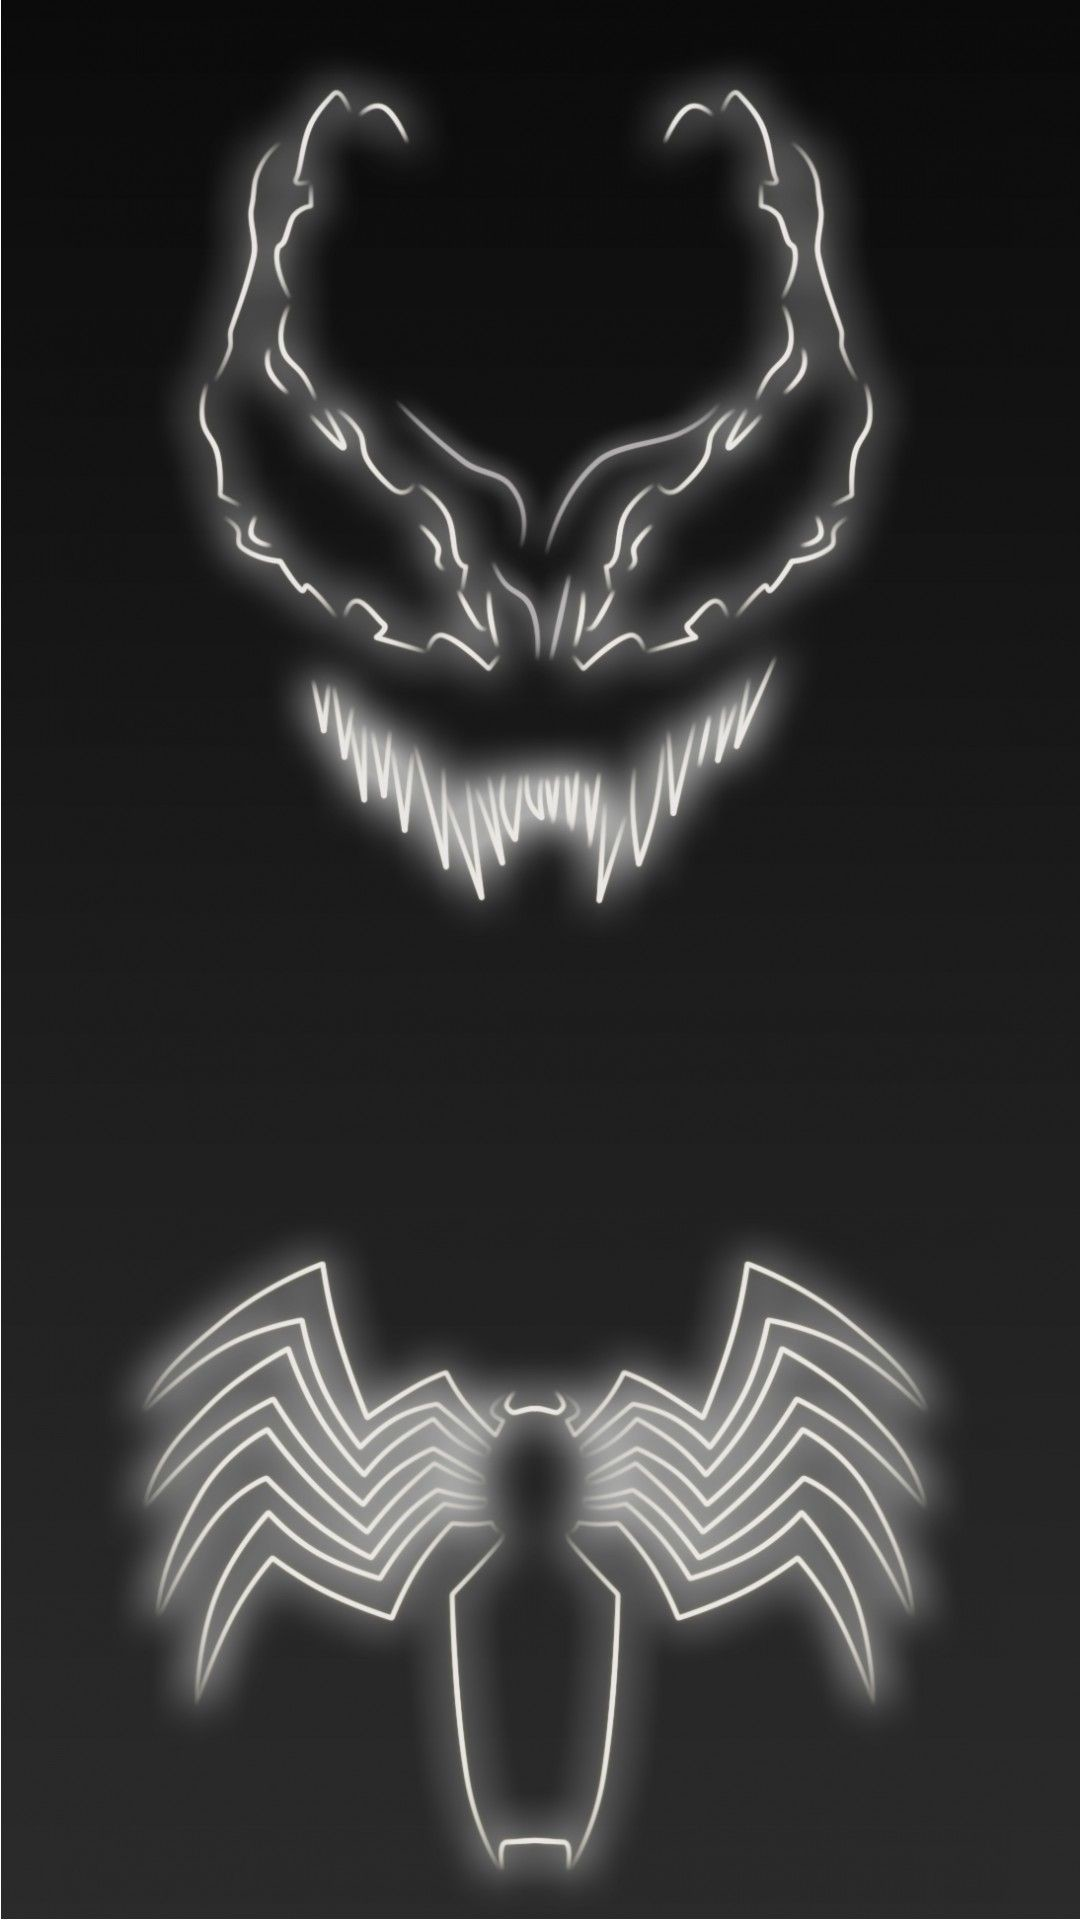 Res: 1080x1920, Neon Light Venom 1080 x 1920 Wallpapers available for free download.